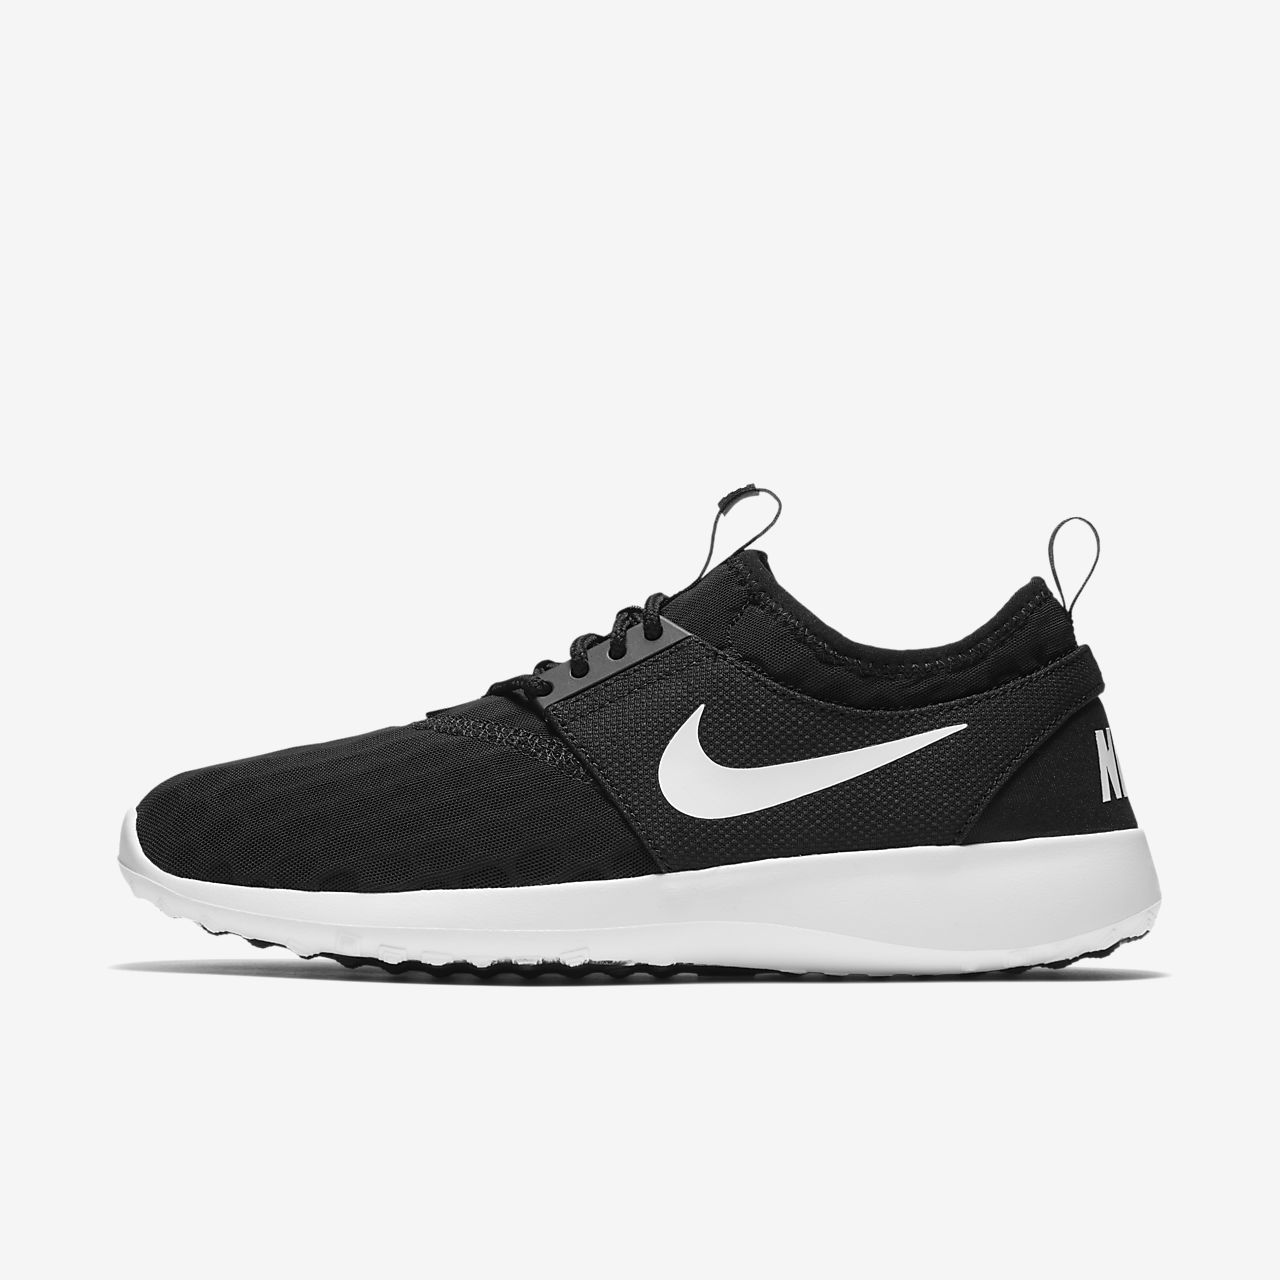 b67d4a5204883f Low Resolution Nike Juvenate Women s Shoe Nike Juvenate Women s Shoe